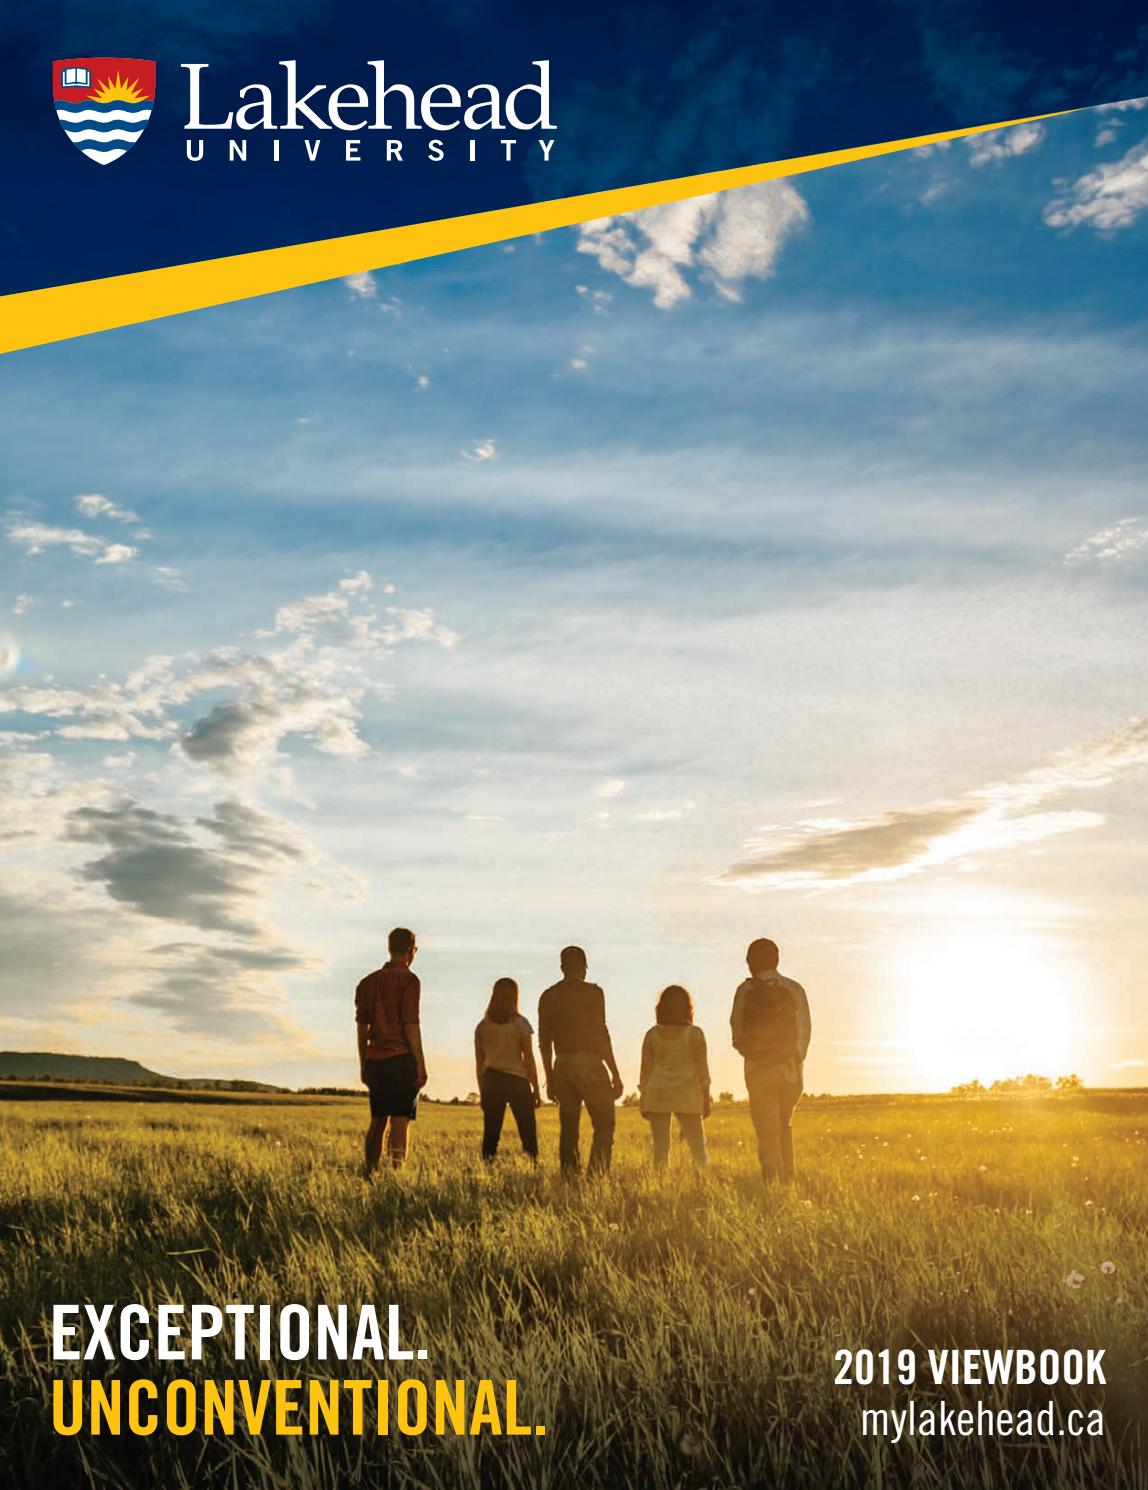 Lakehead University 2019 Viewbook By Circuits 8085 Projects Blog Archive Analog Cricket Sounds Circuit Undergraduate Recruitment Issuu